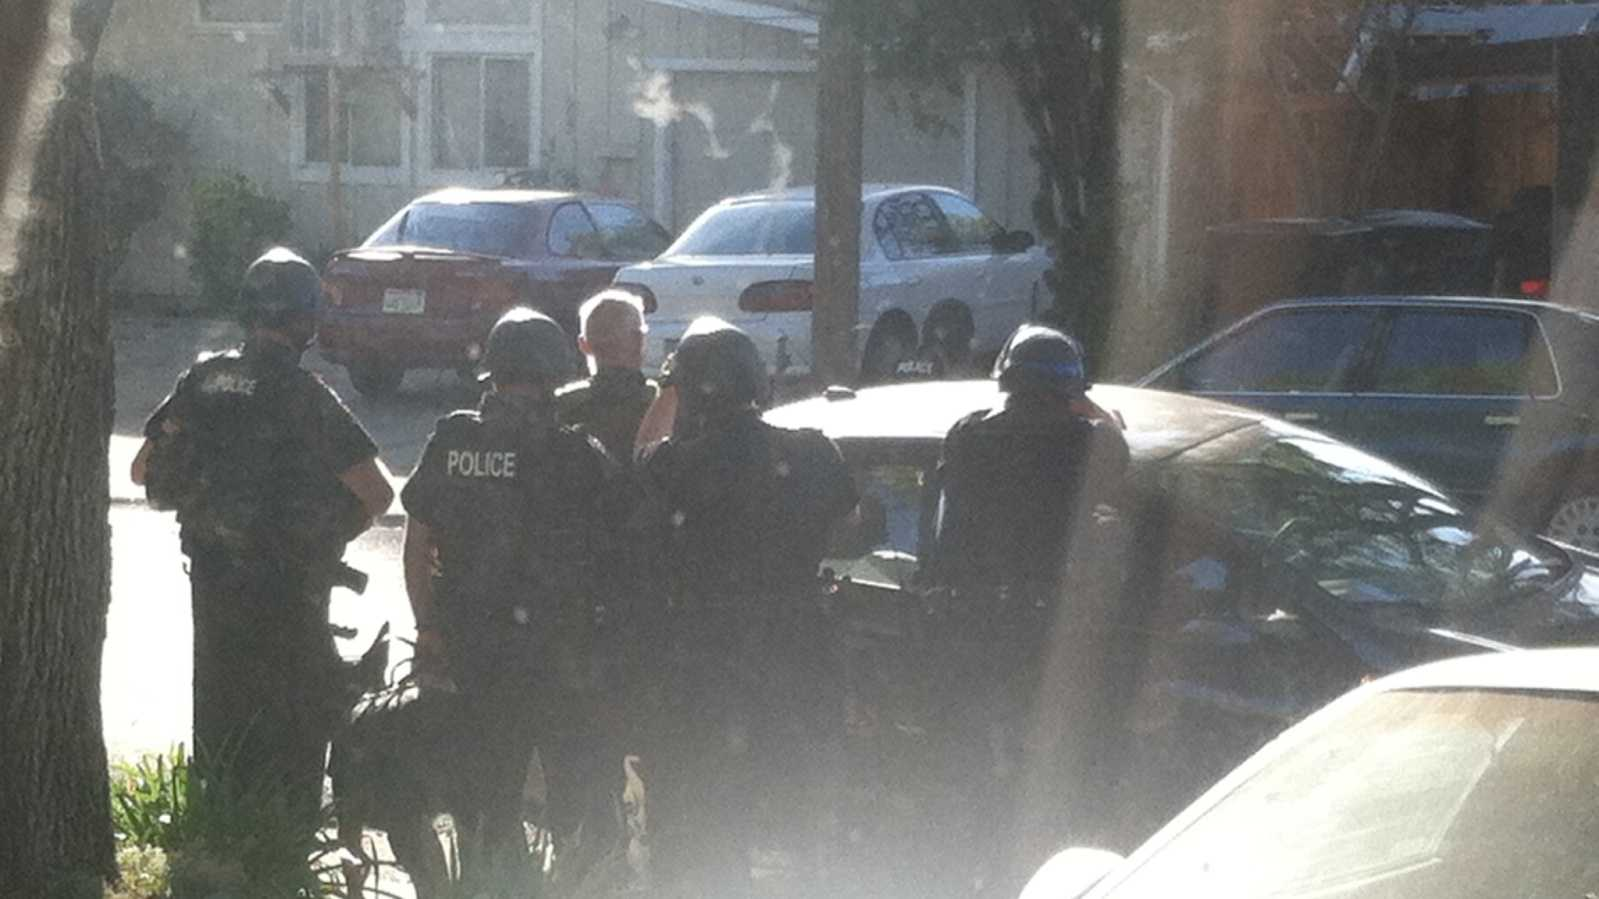 A KCRA Insider took these photos of Friday's standoff in Roseville. (Oct. 25, 2013)